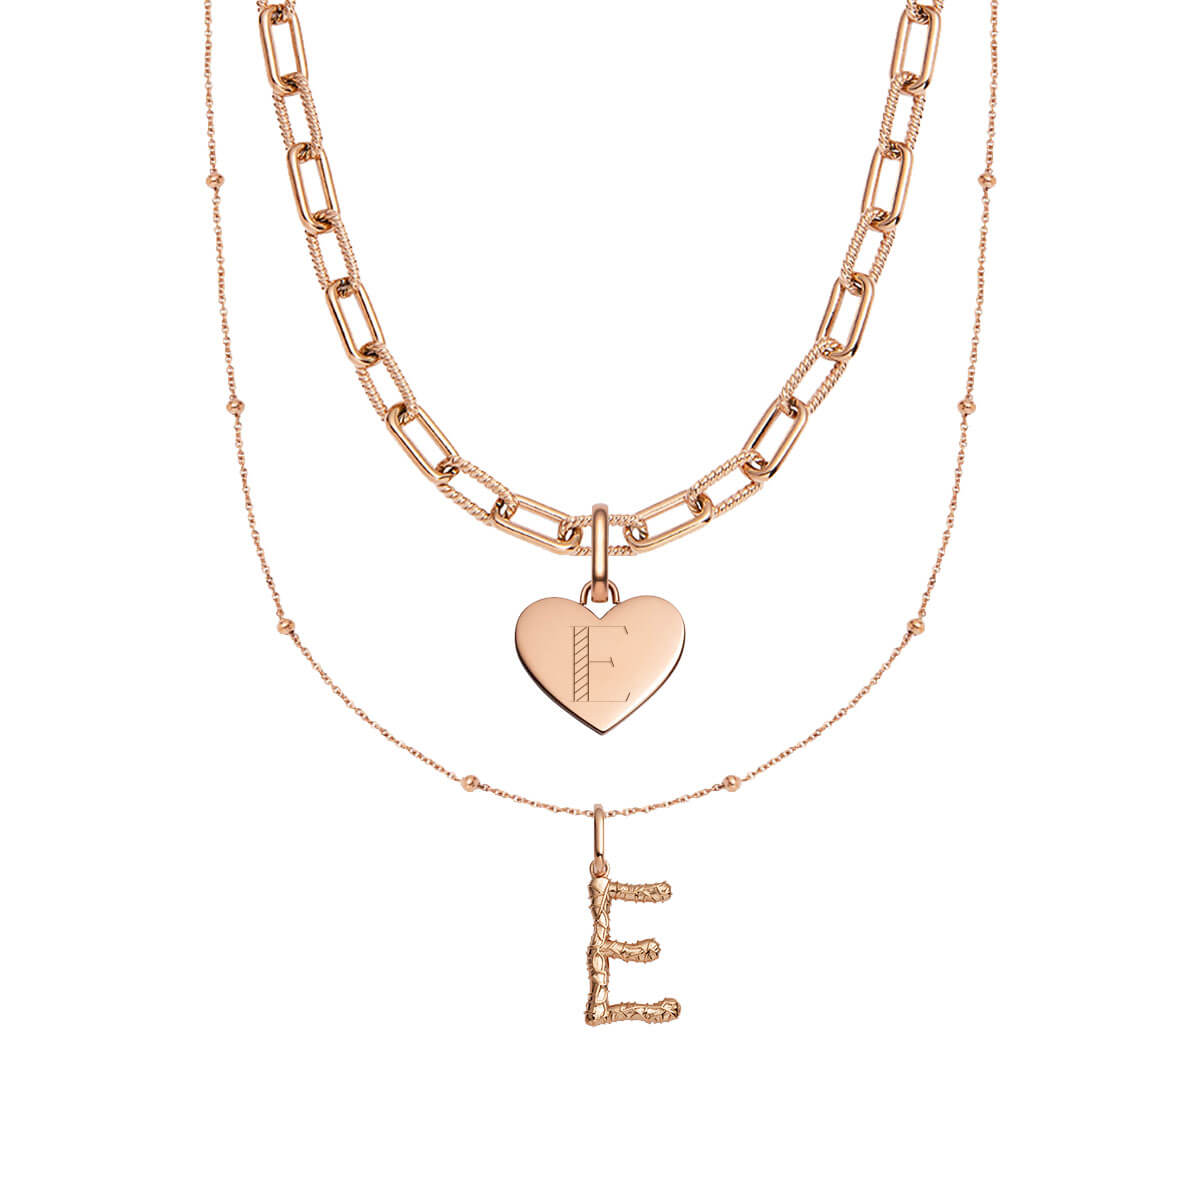 Foil Letter & Heart Square Link Chain Love Gift Set (Rose Gold)